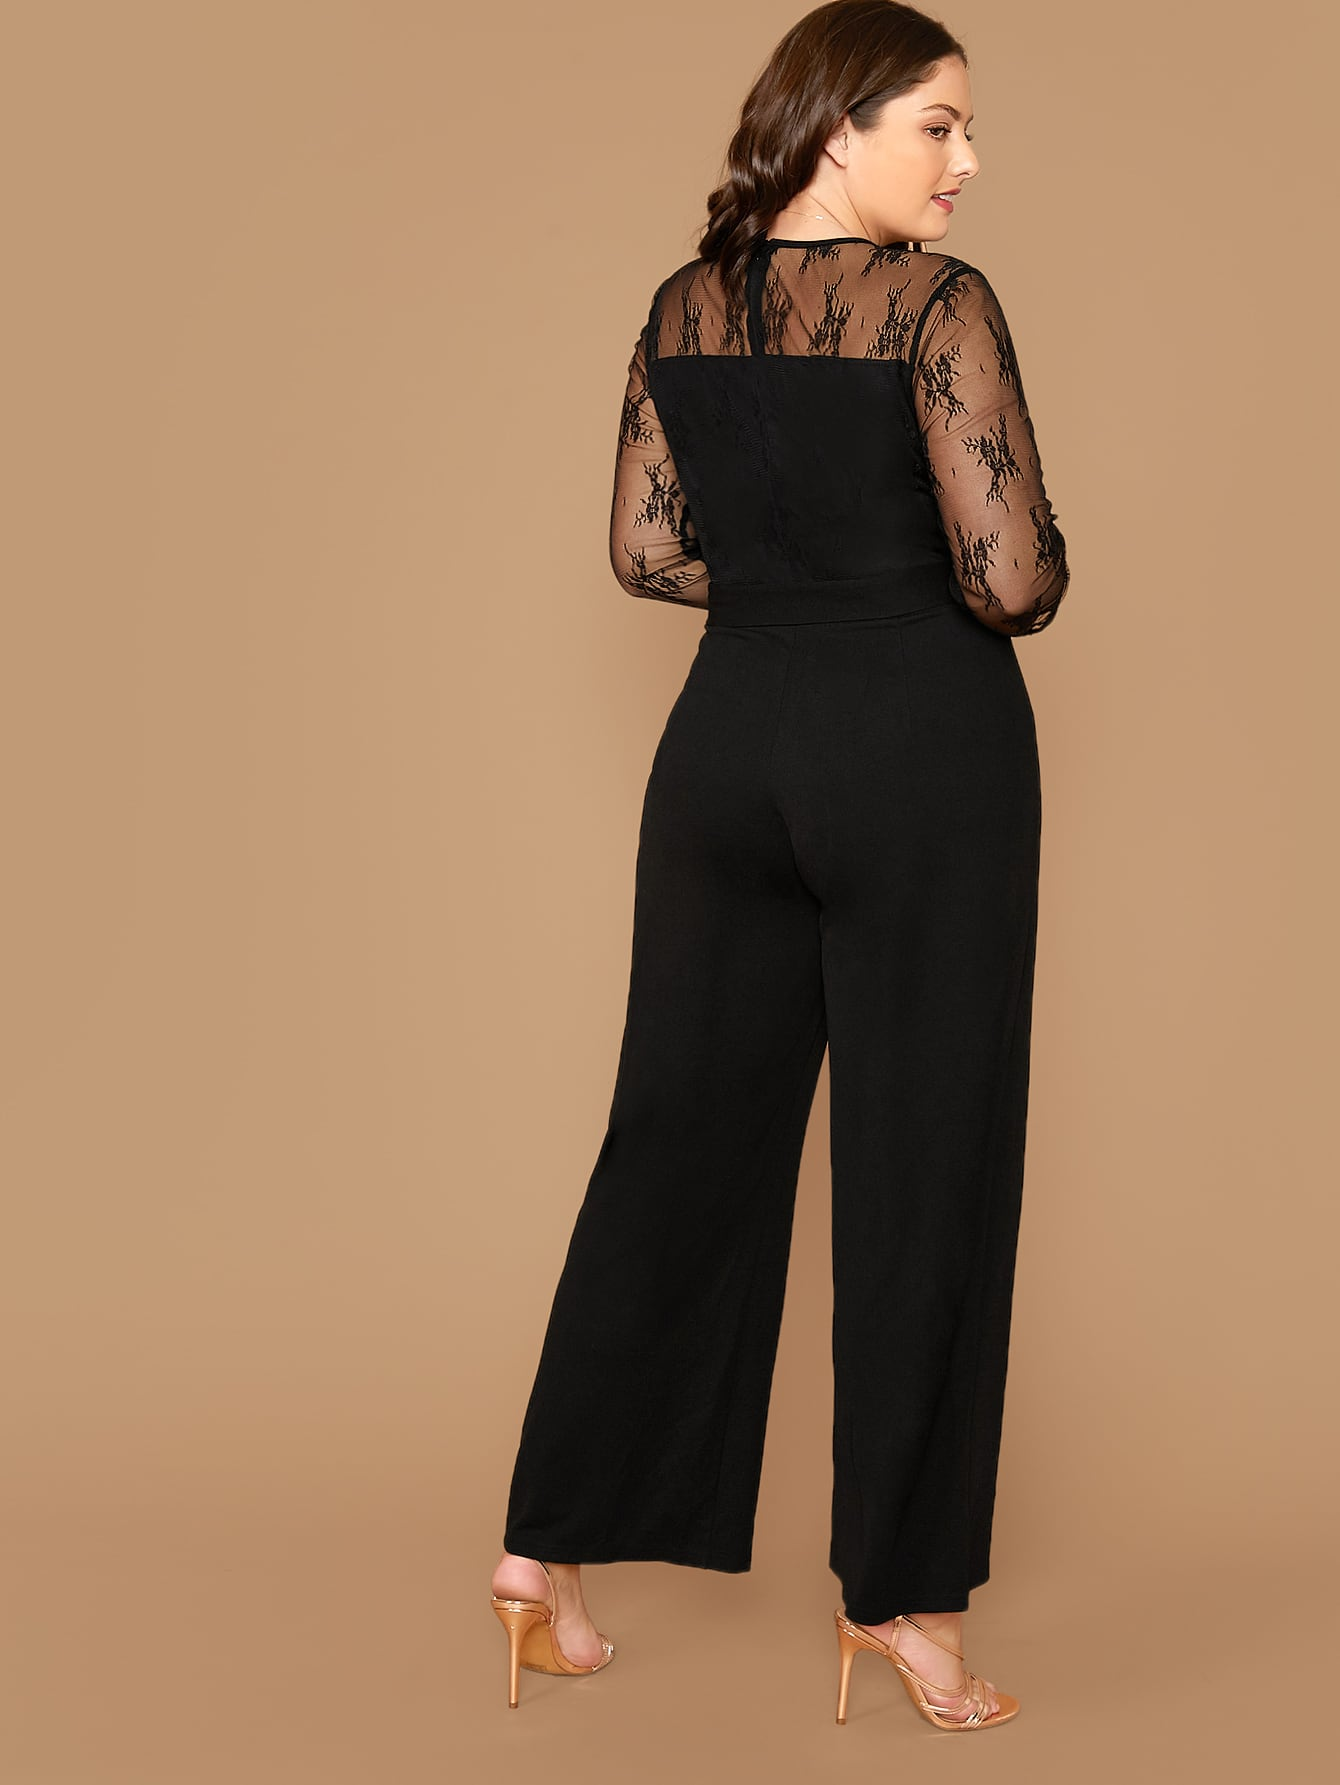 Plus Lace Shoulder Self Belted Wide Leg Jumpsuit-Trendy-JayBoutique-0XL-Trendy-JayBoutique